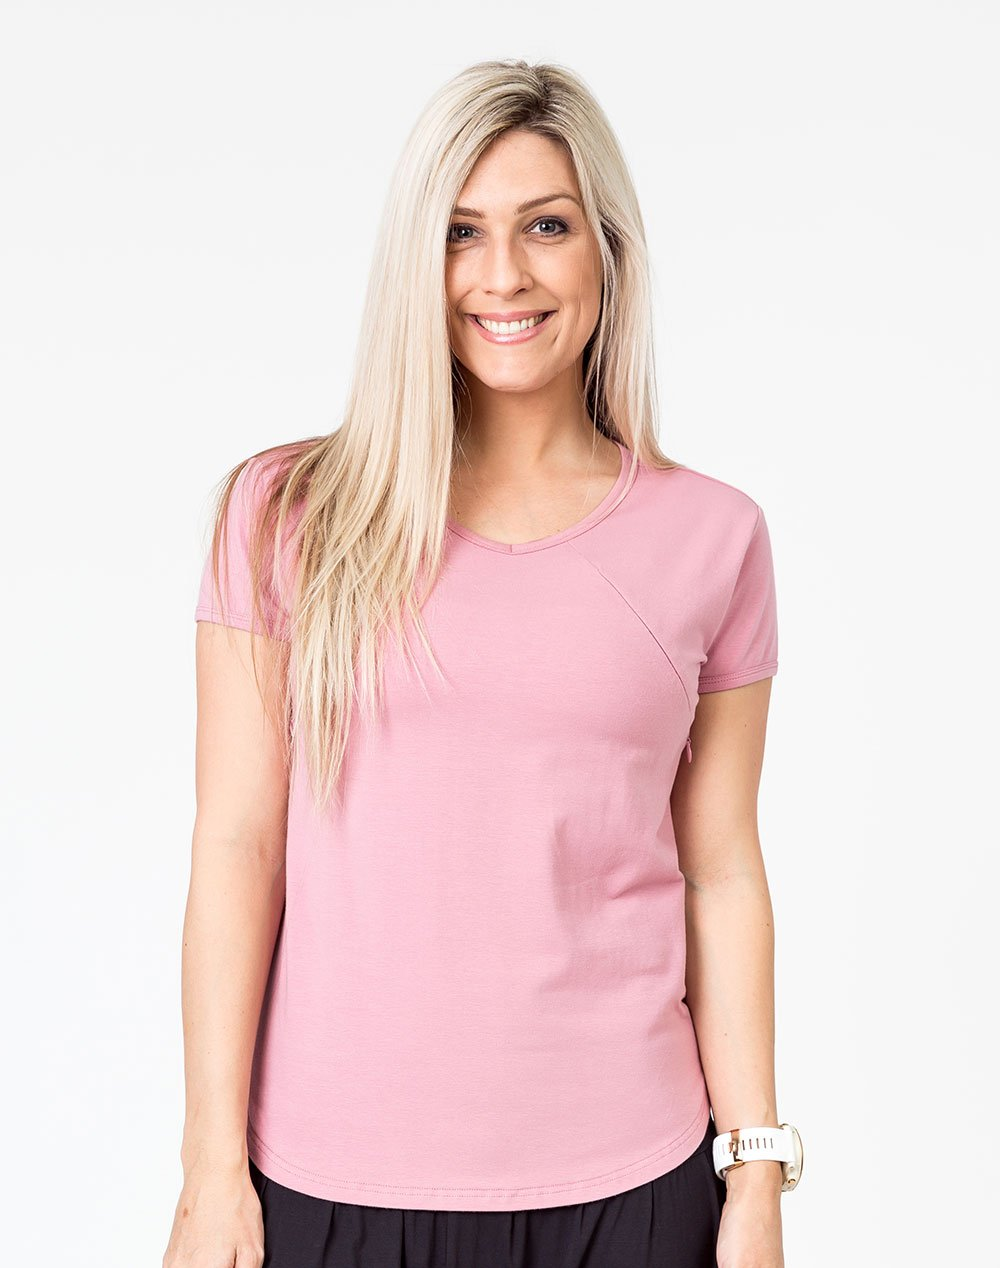 active mom wearing a pink scoop breastfeeding t-shirt